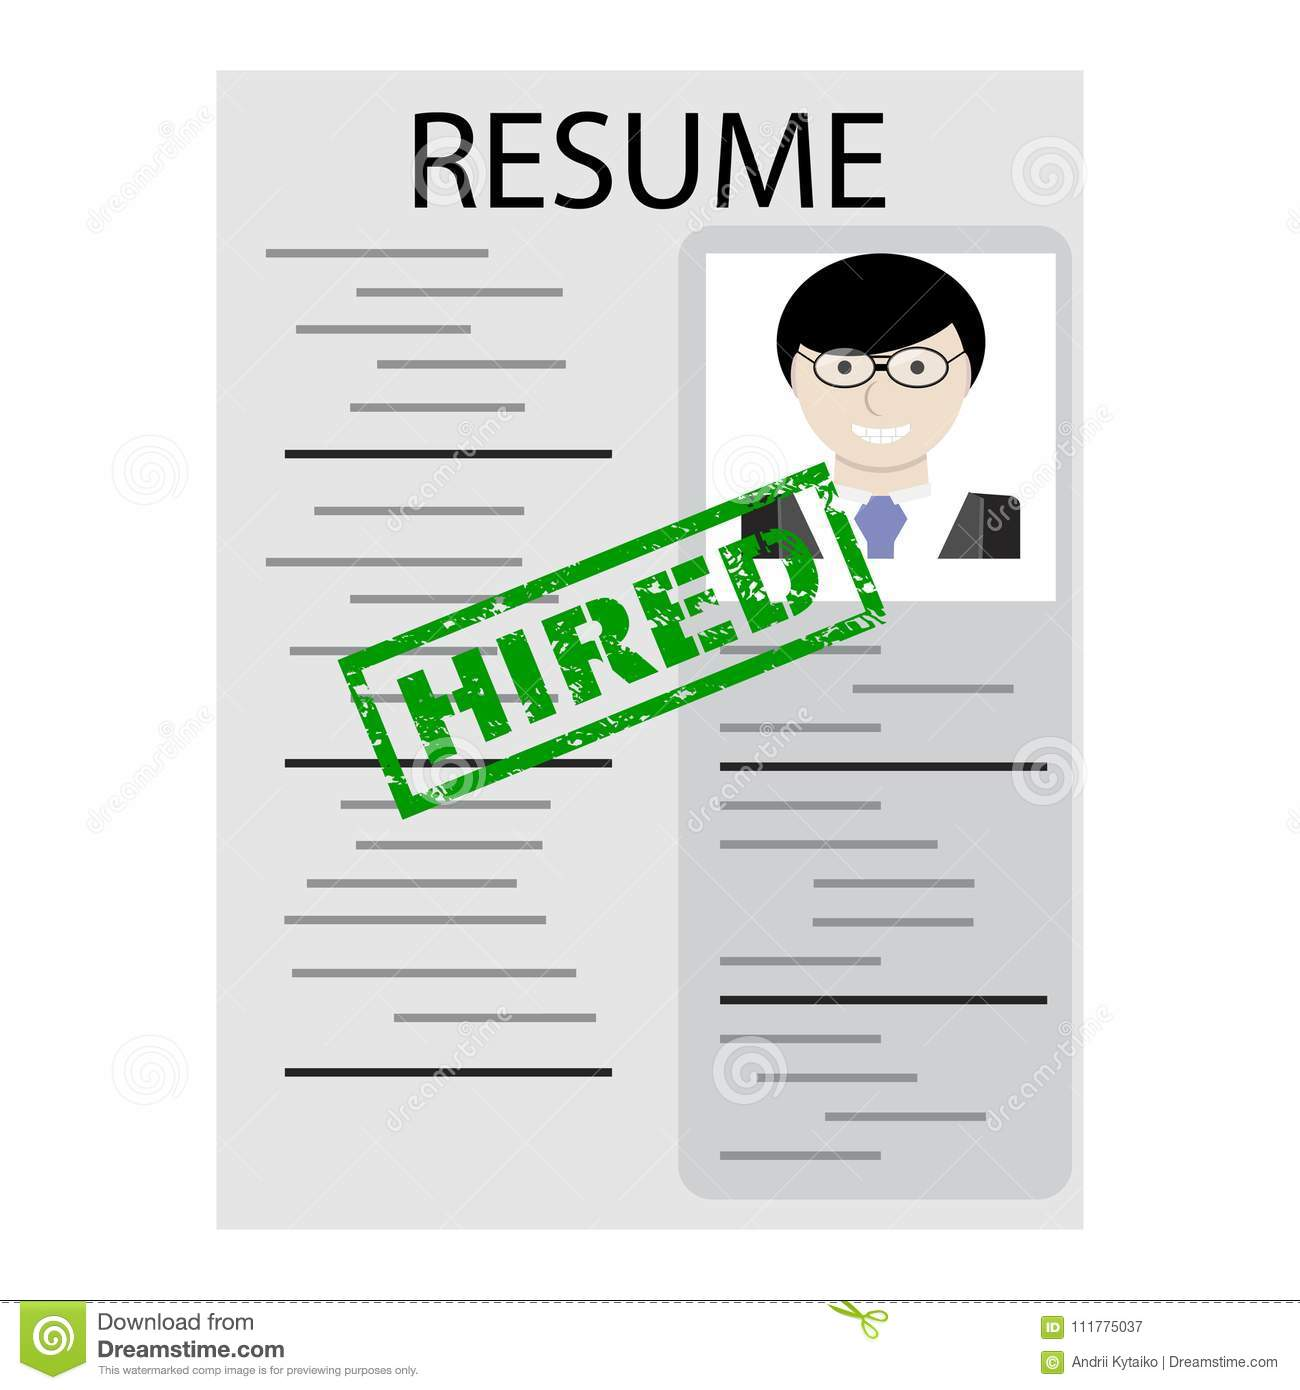 Resume With Stamp Hired Stock Vector Illustration Of Illustration